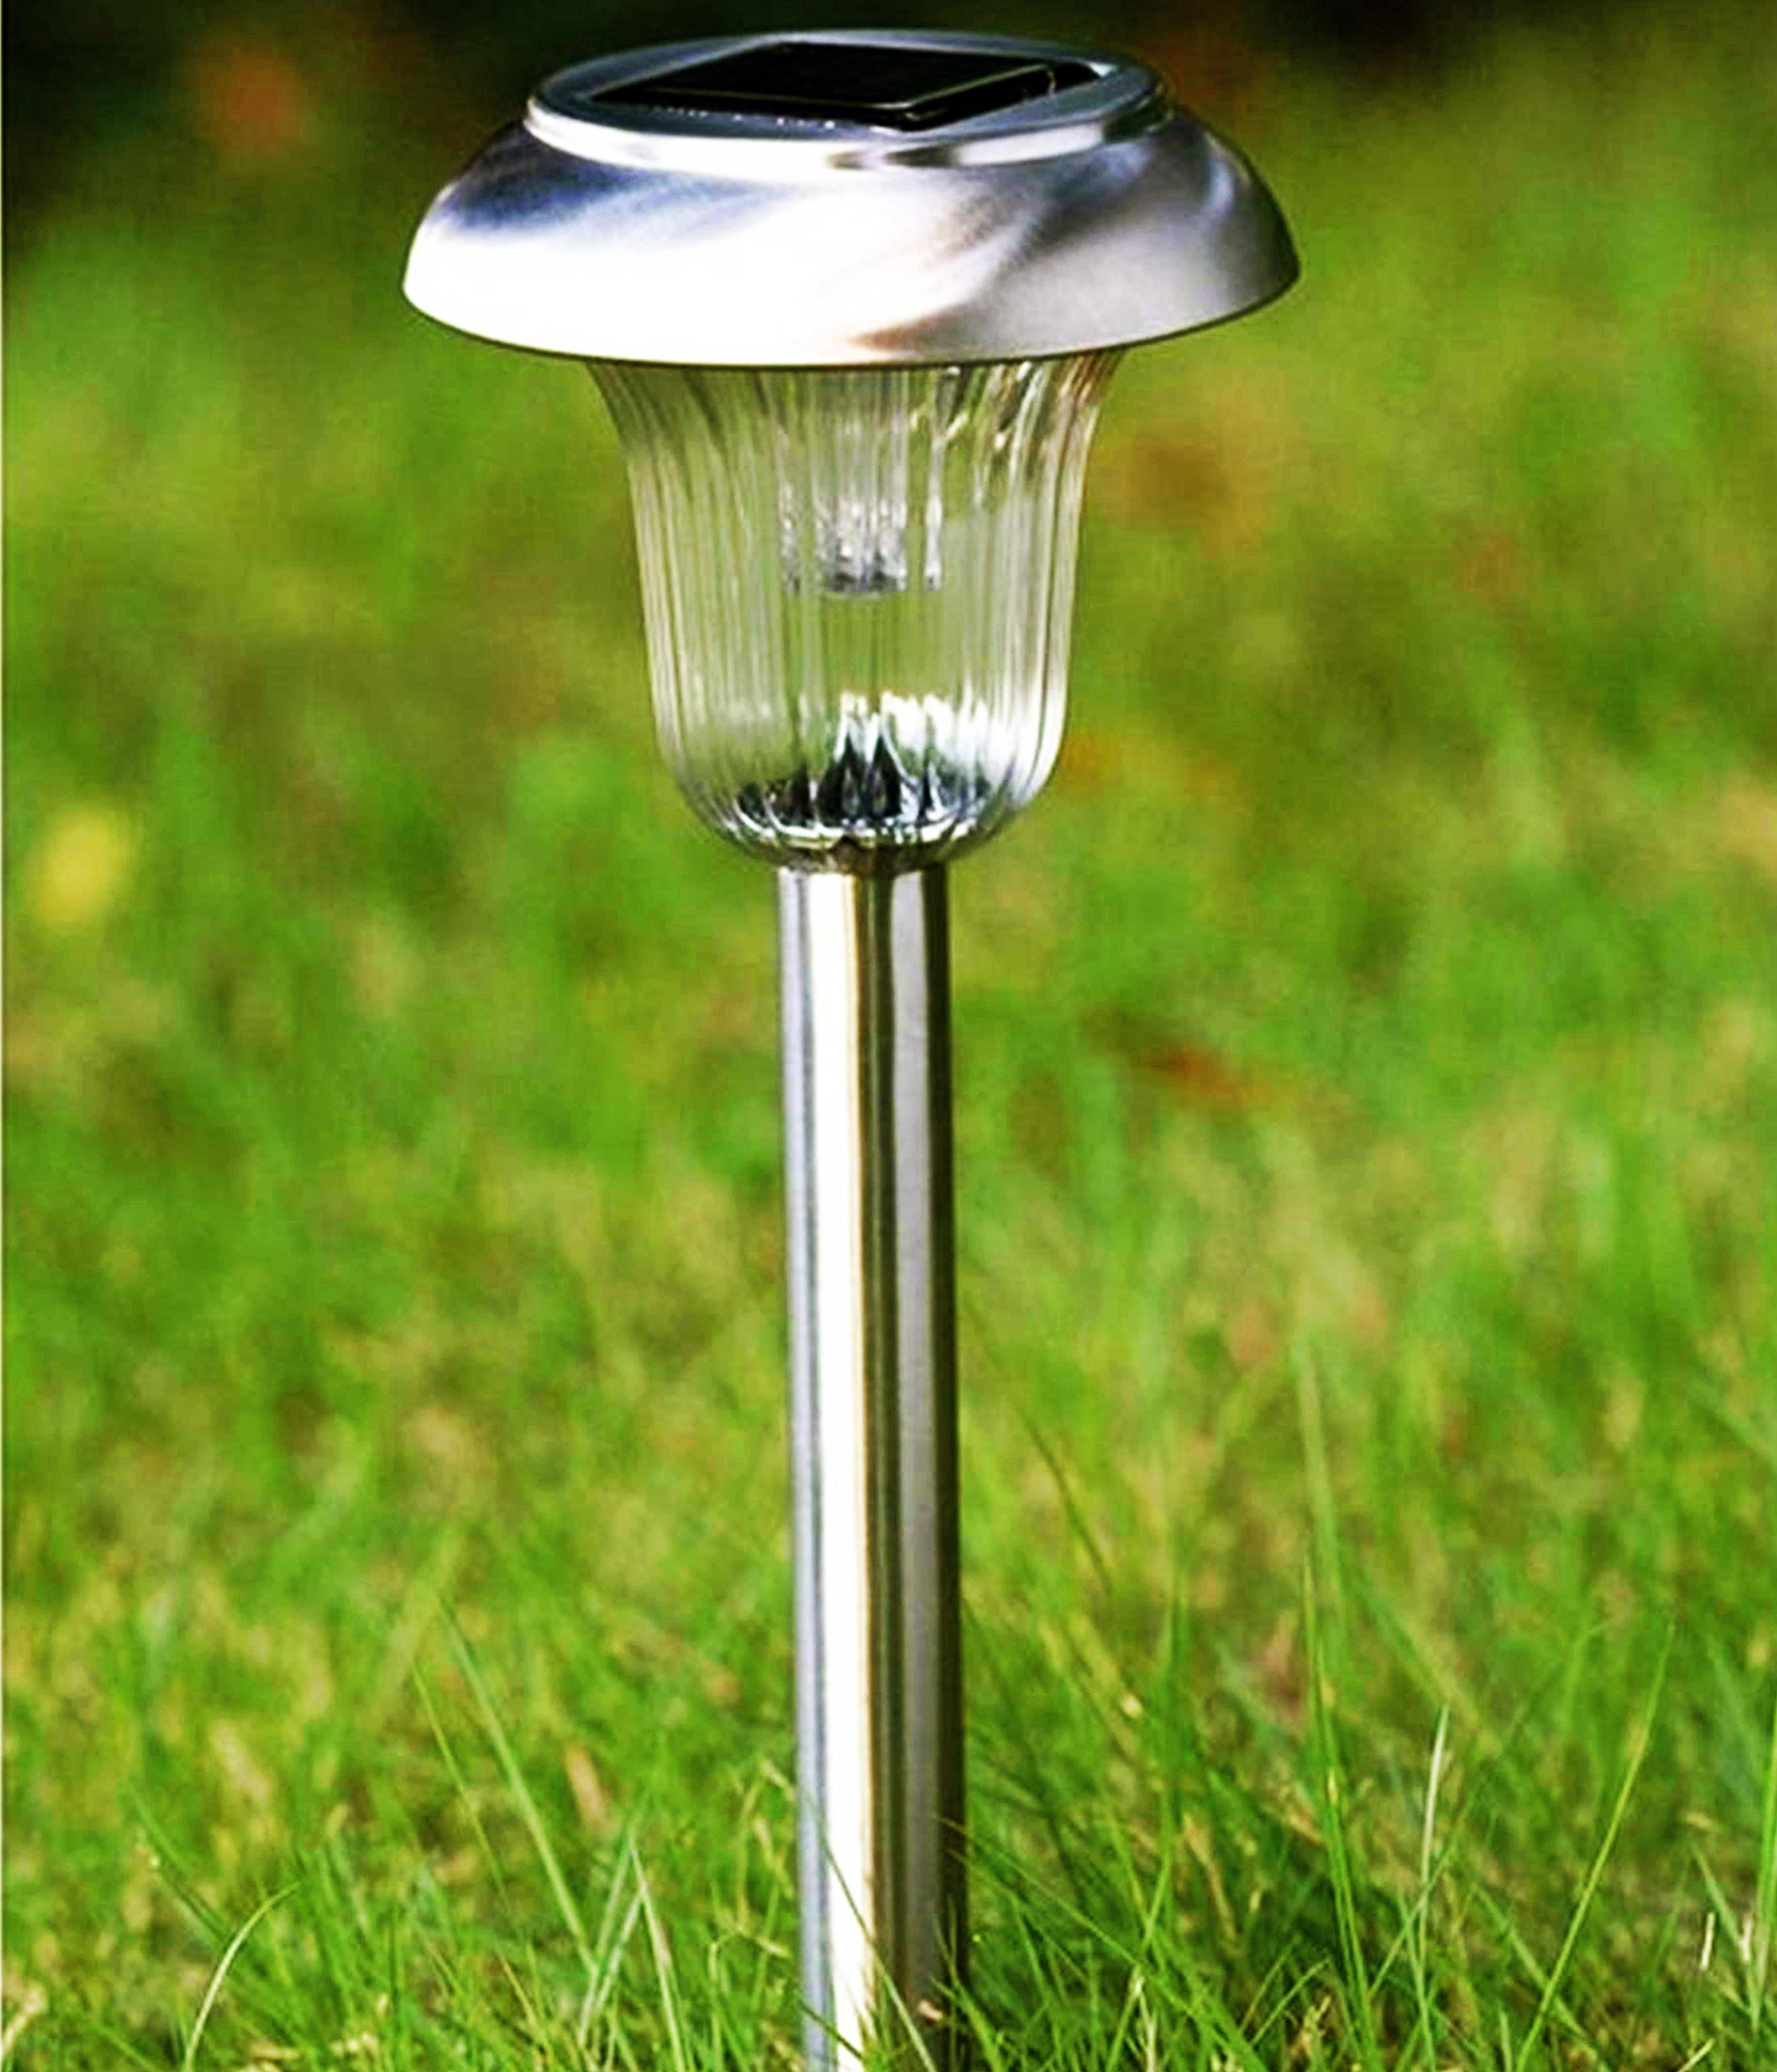 Sogrand Solar Garden Lights Outdoor Stakes Decorations Pathway Decorative Stake Light Dual Color LED Landscape Home Decor Waterproof Bright Yard Lamp For Outside Walkway Driveway Patio 8Pack